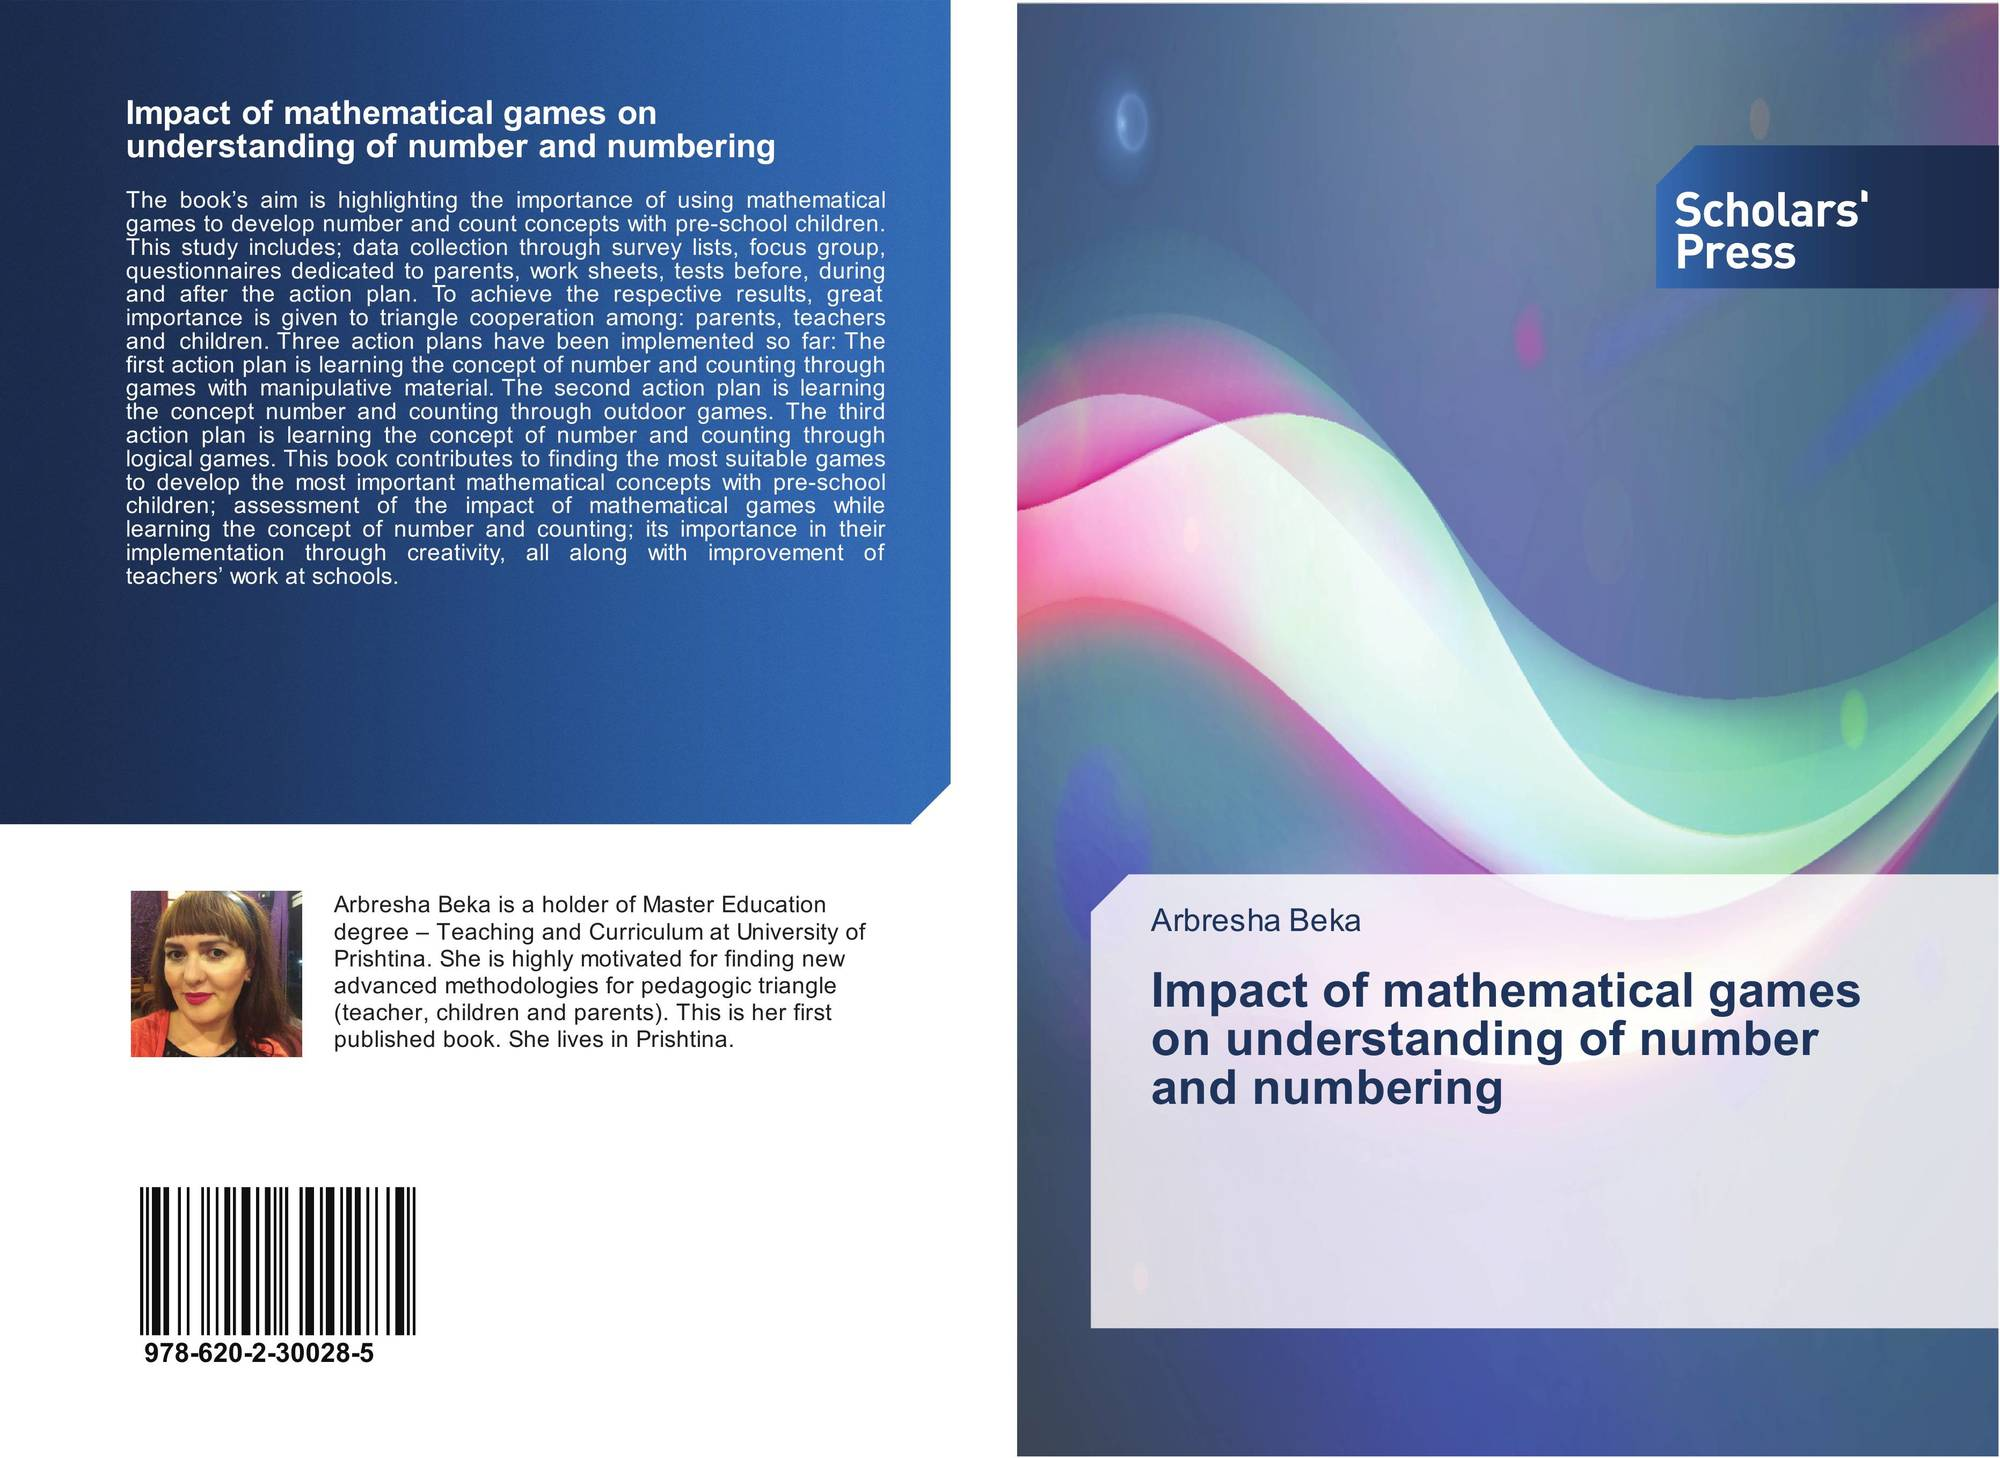 the importance of understanding how childrens mathematical thinking develops Young children's natural mathematical thinking it seems probable that little is gained by using any of the child's time for arith- t metic before children generally follow certain developmental paths in lejrning mathematics when teachers understand the progression of levels of thinking along these.